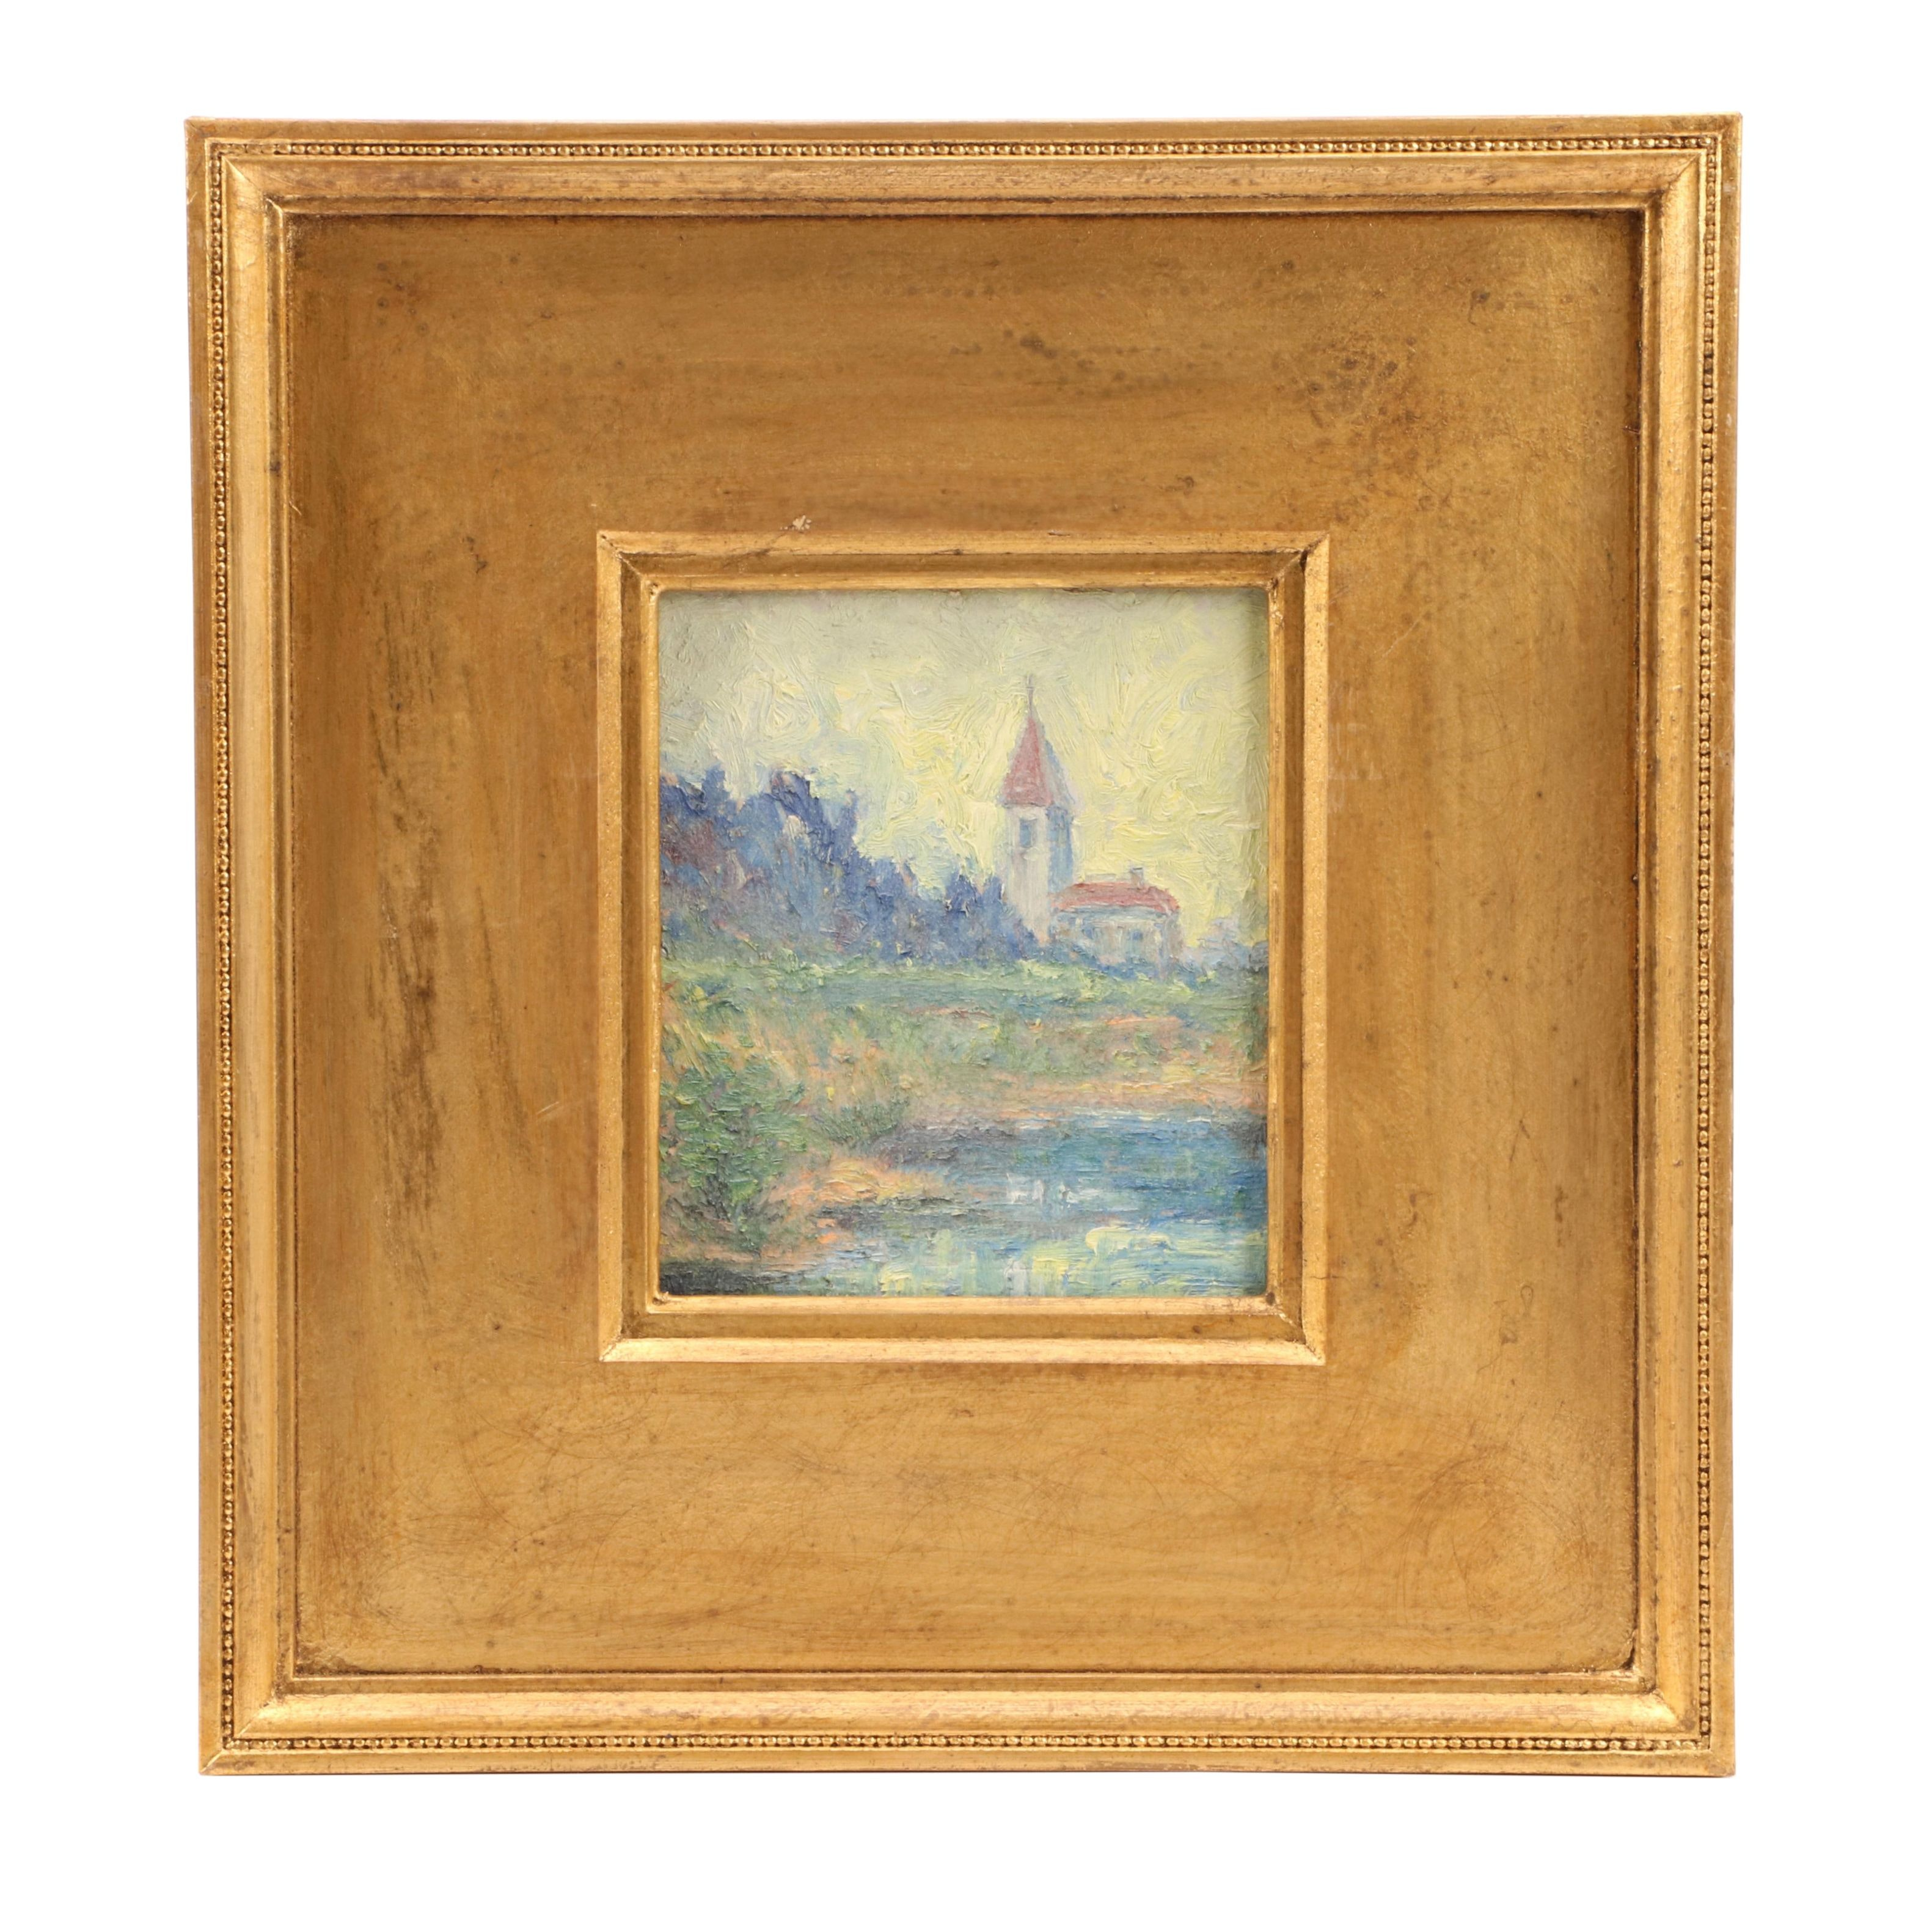 Impressionist Style Oil Painting of Landscape with Church